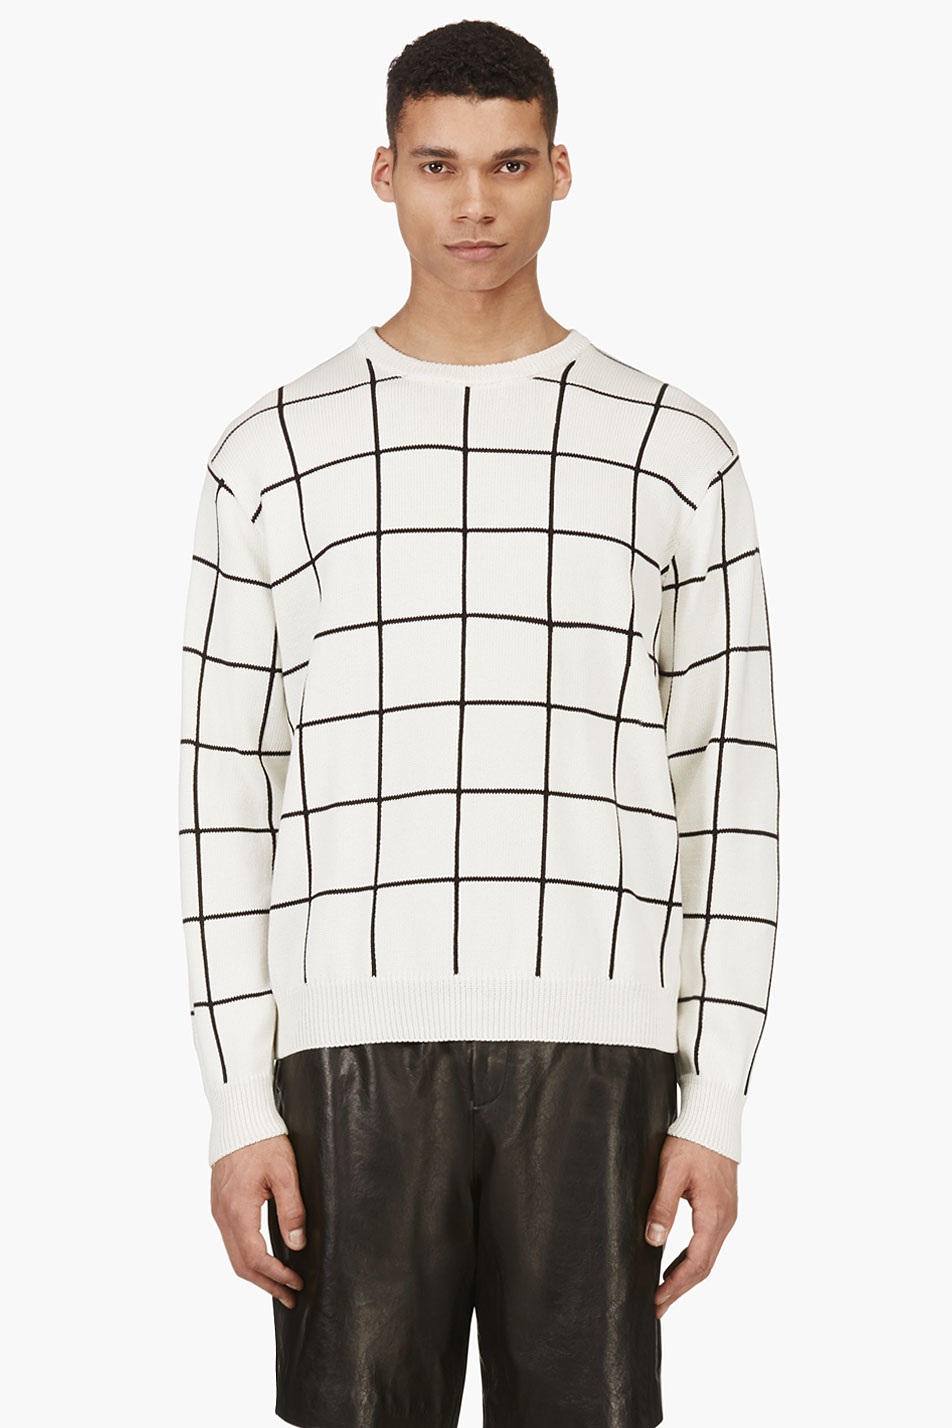 62d081a4140f Lyst - T By Alexander Wang Ivory Grid Check Knit Sweater in White ...